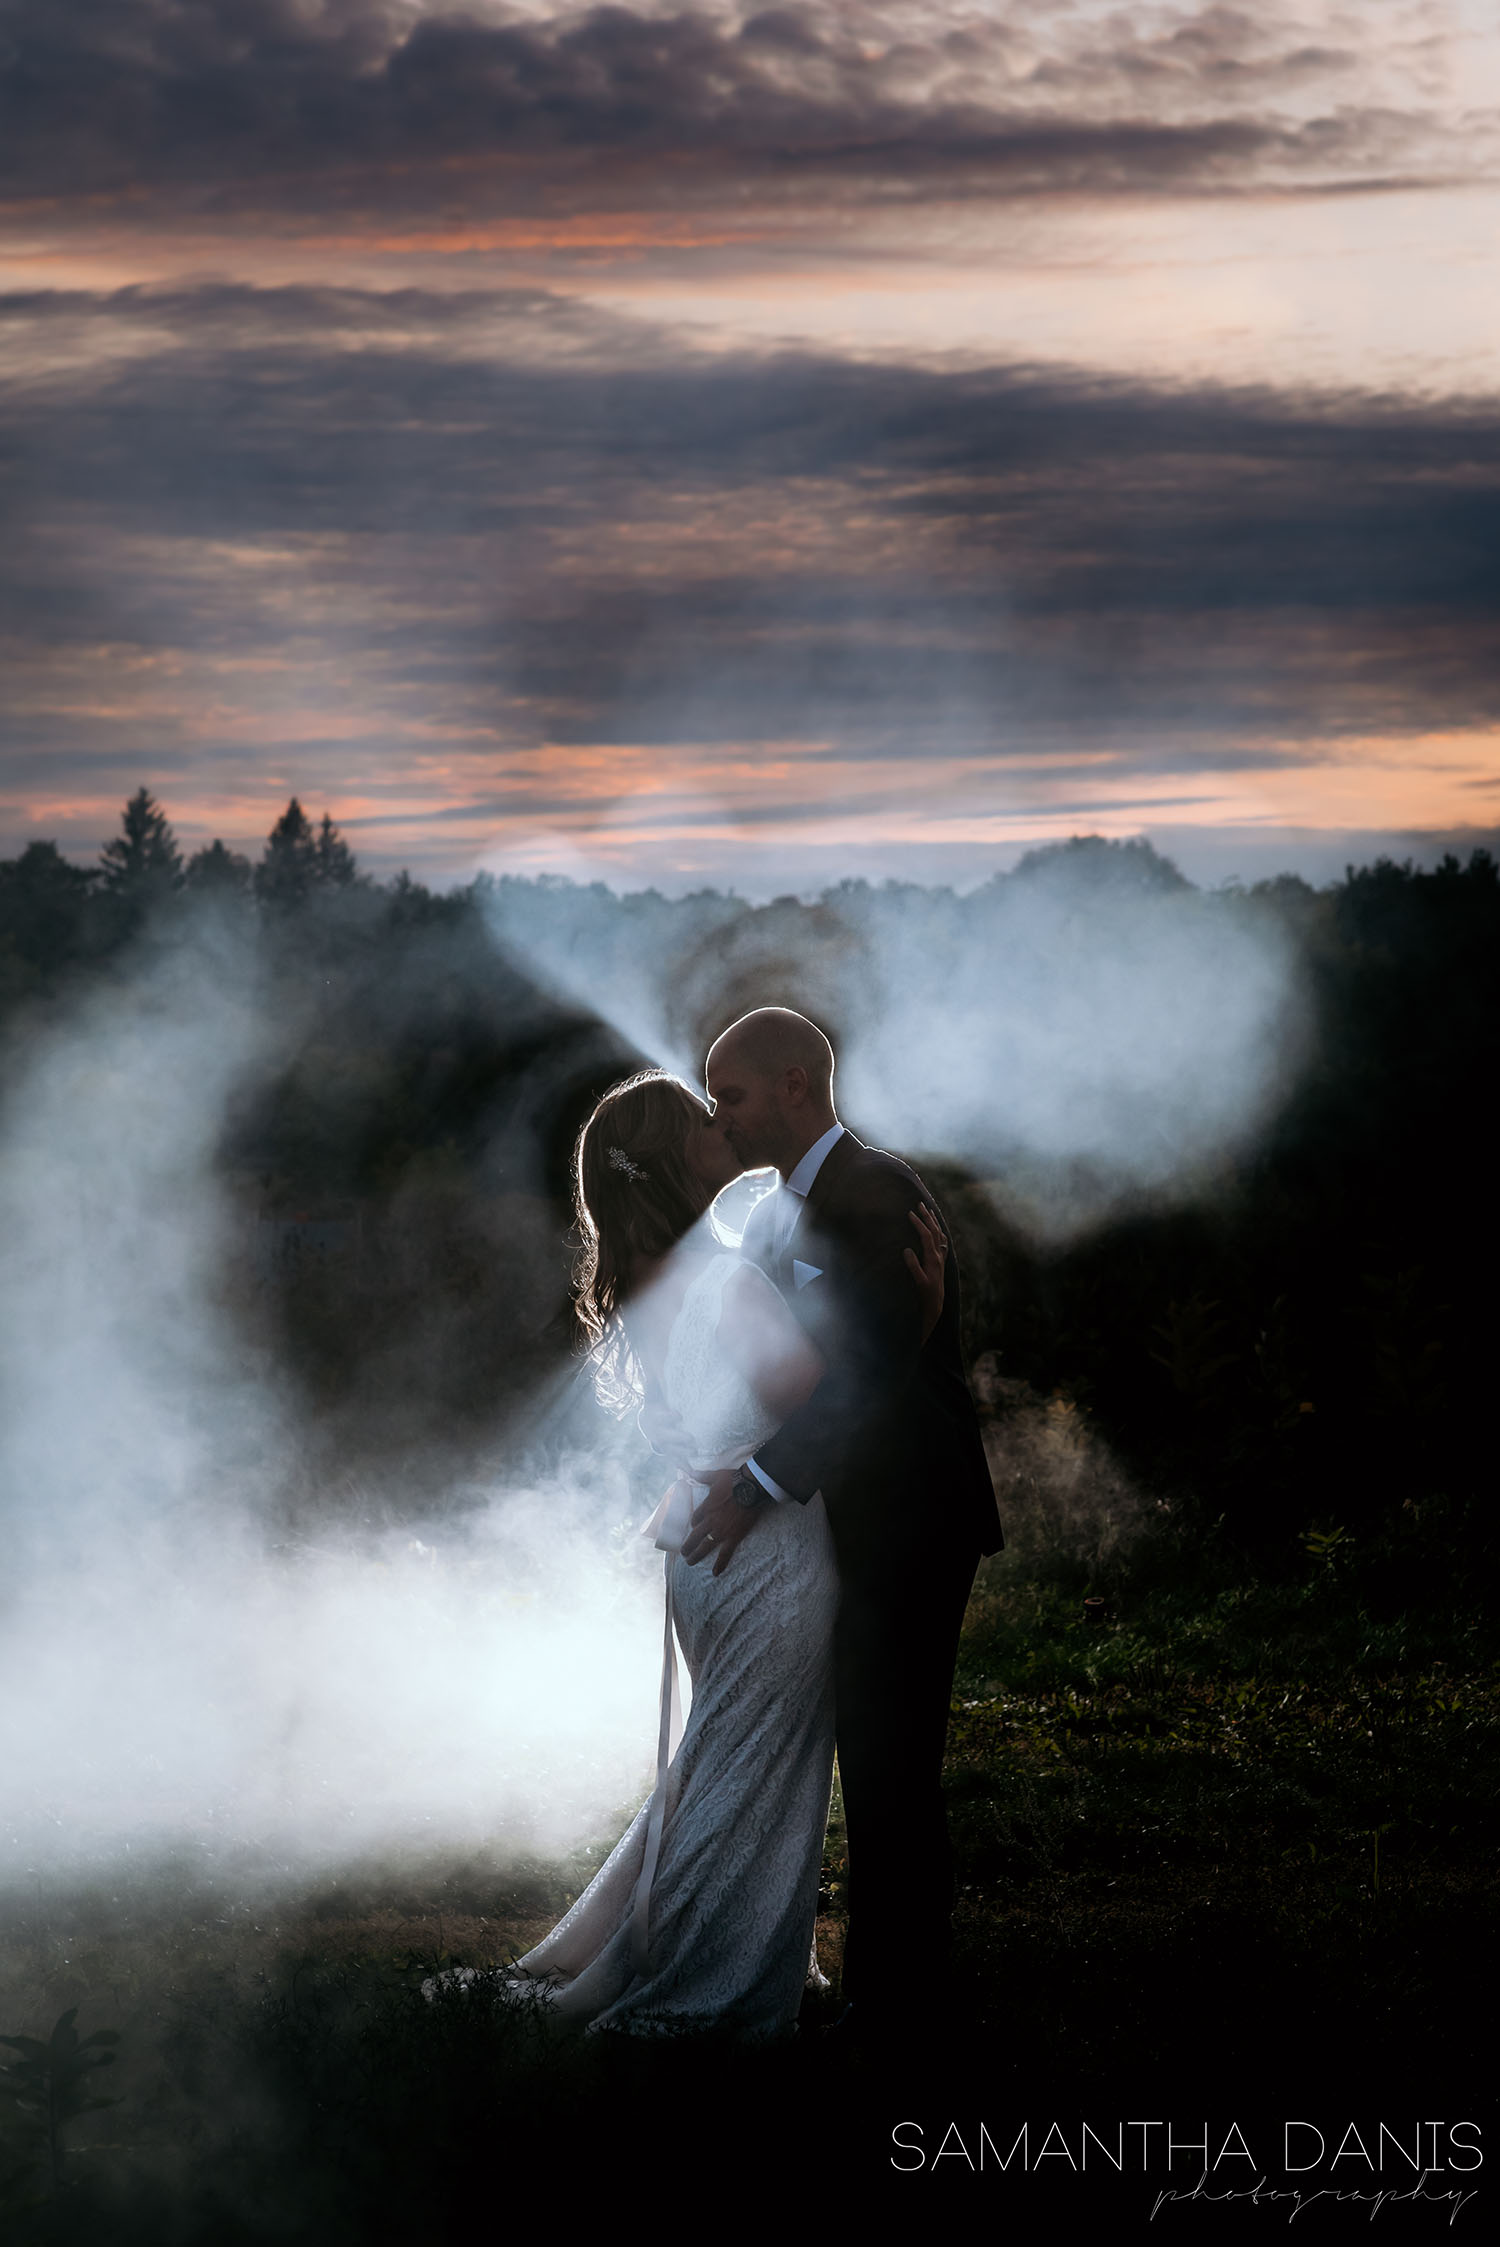 ottawa wedding sunset strathmere ottawa wedding photographer samantha danis photography